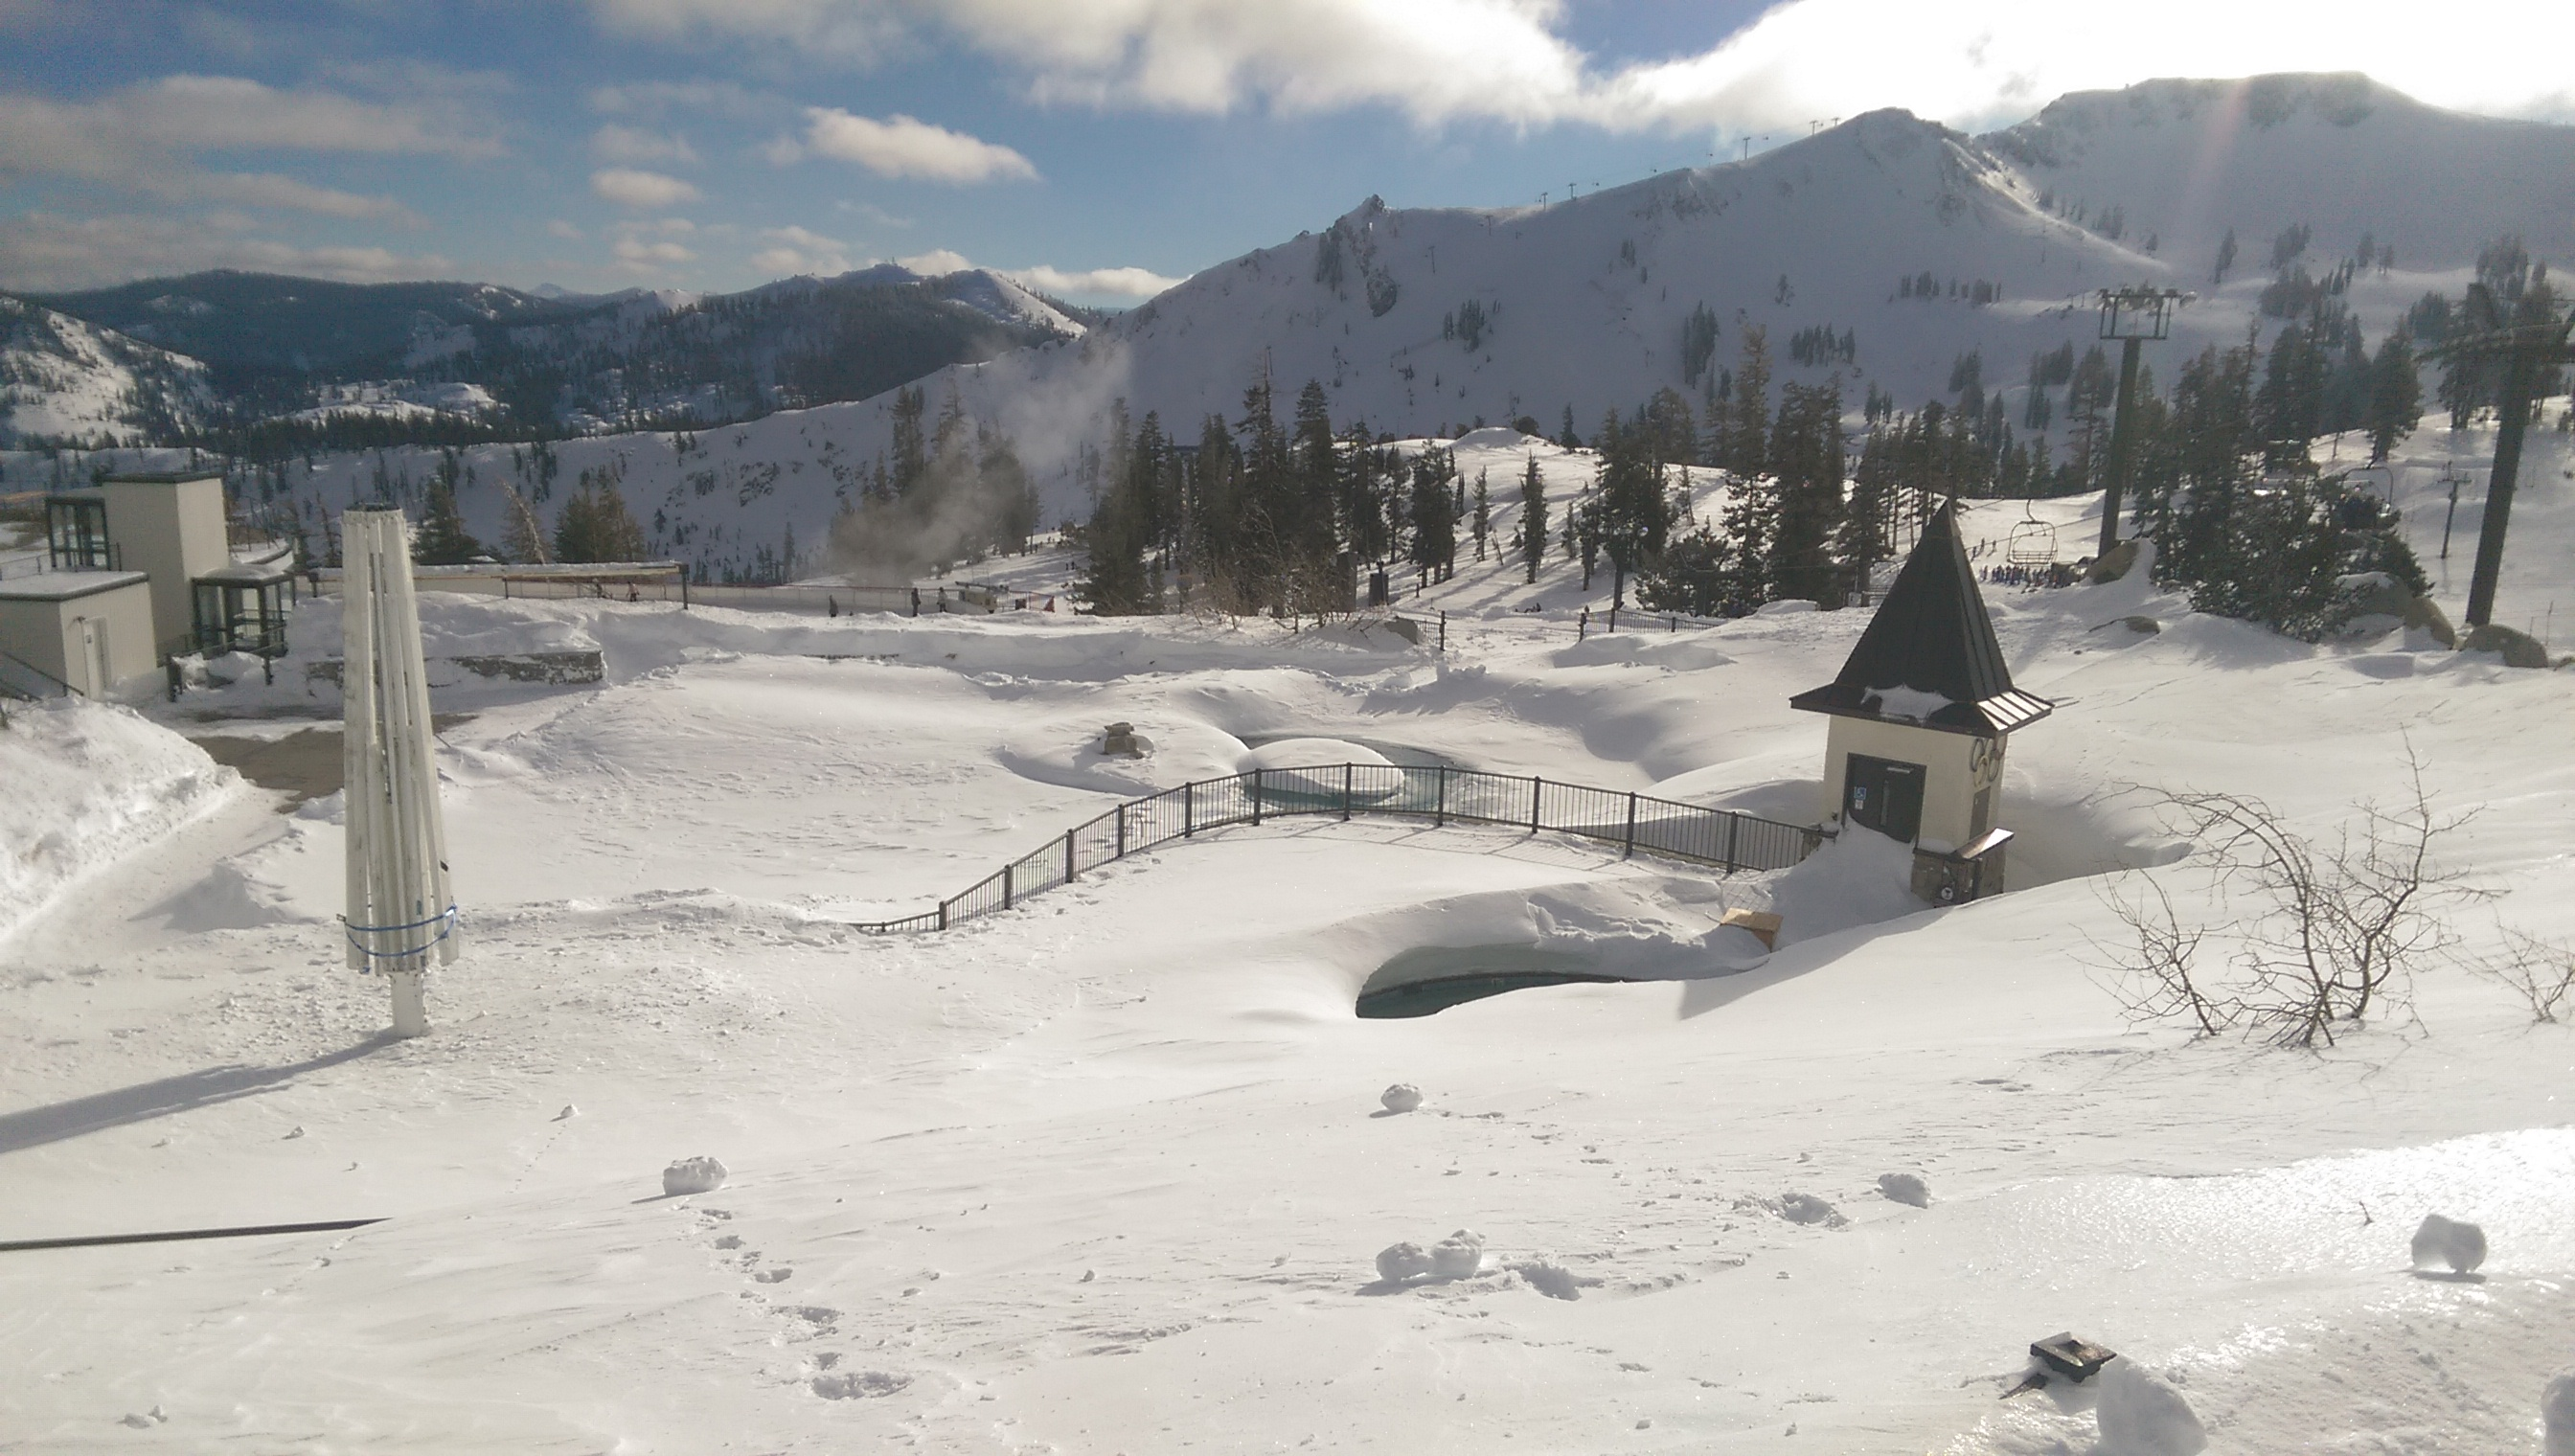 39 quick n 39 dirty 39 squaw valley conditions report wintery - High camp swimming pool squaw valley ...